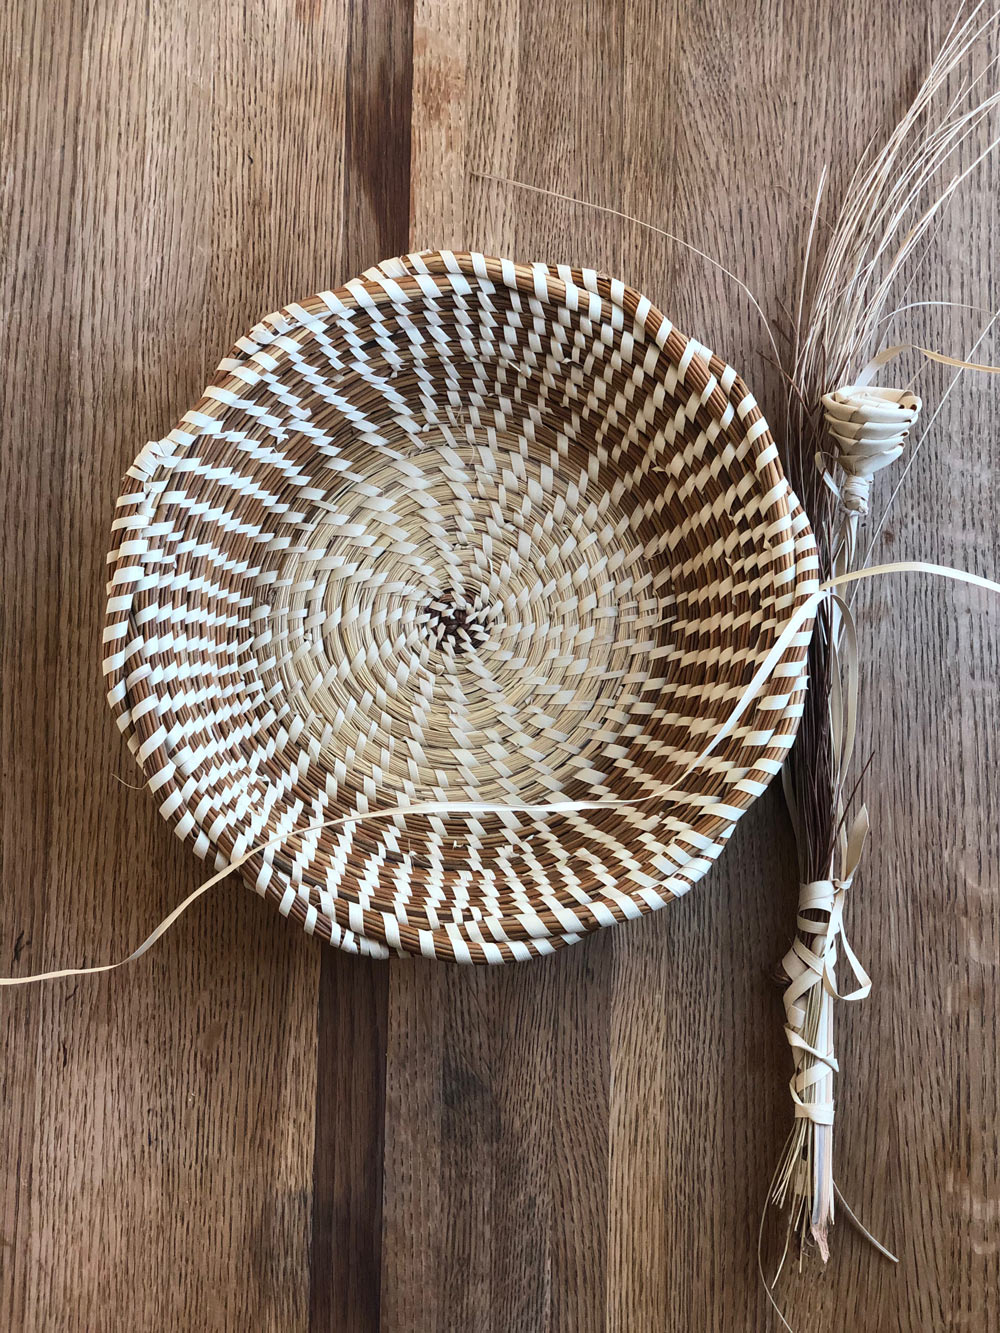 Close up on woven basket.